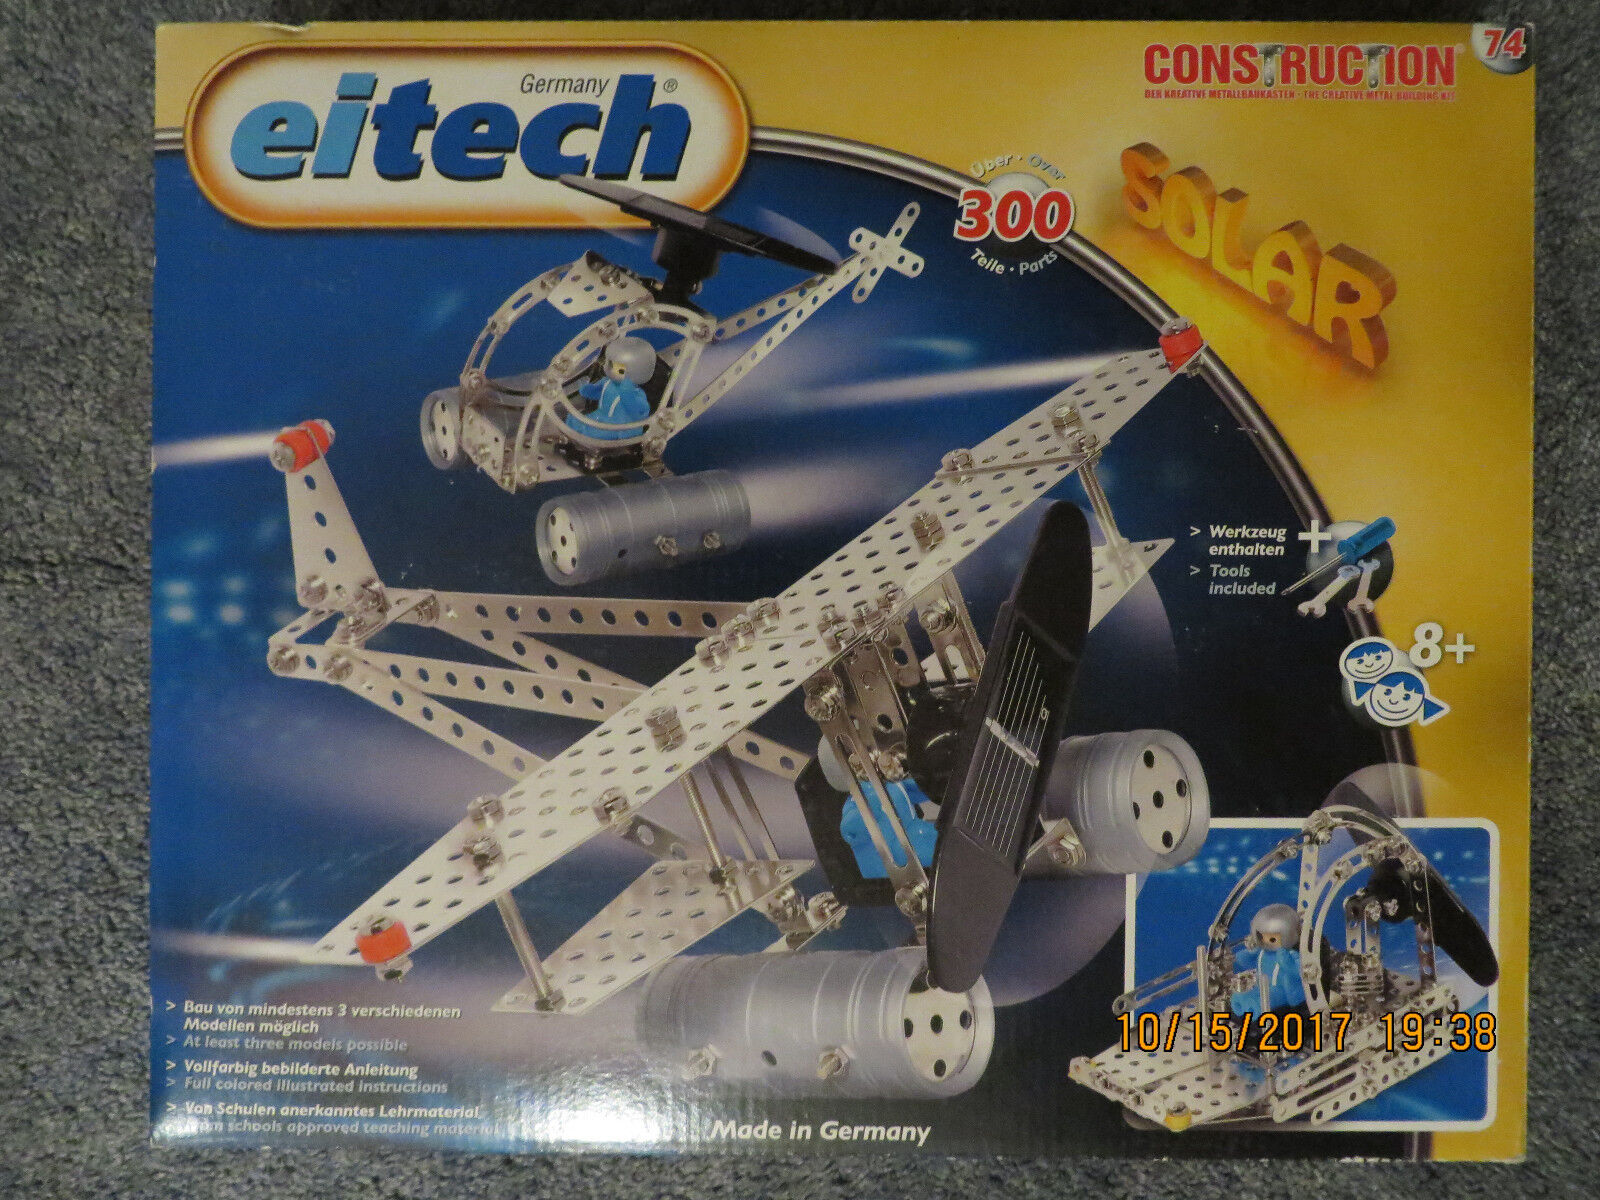 300 piece Eitech C74 solar powered construction set